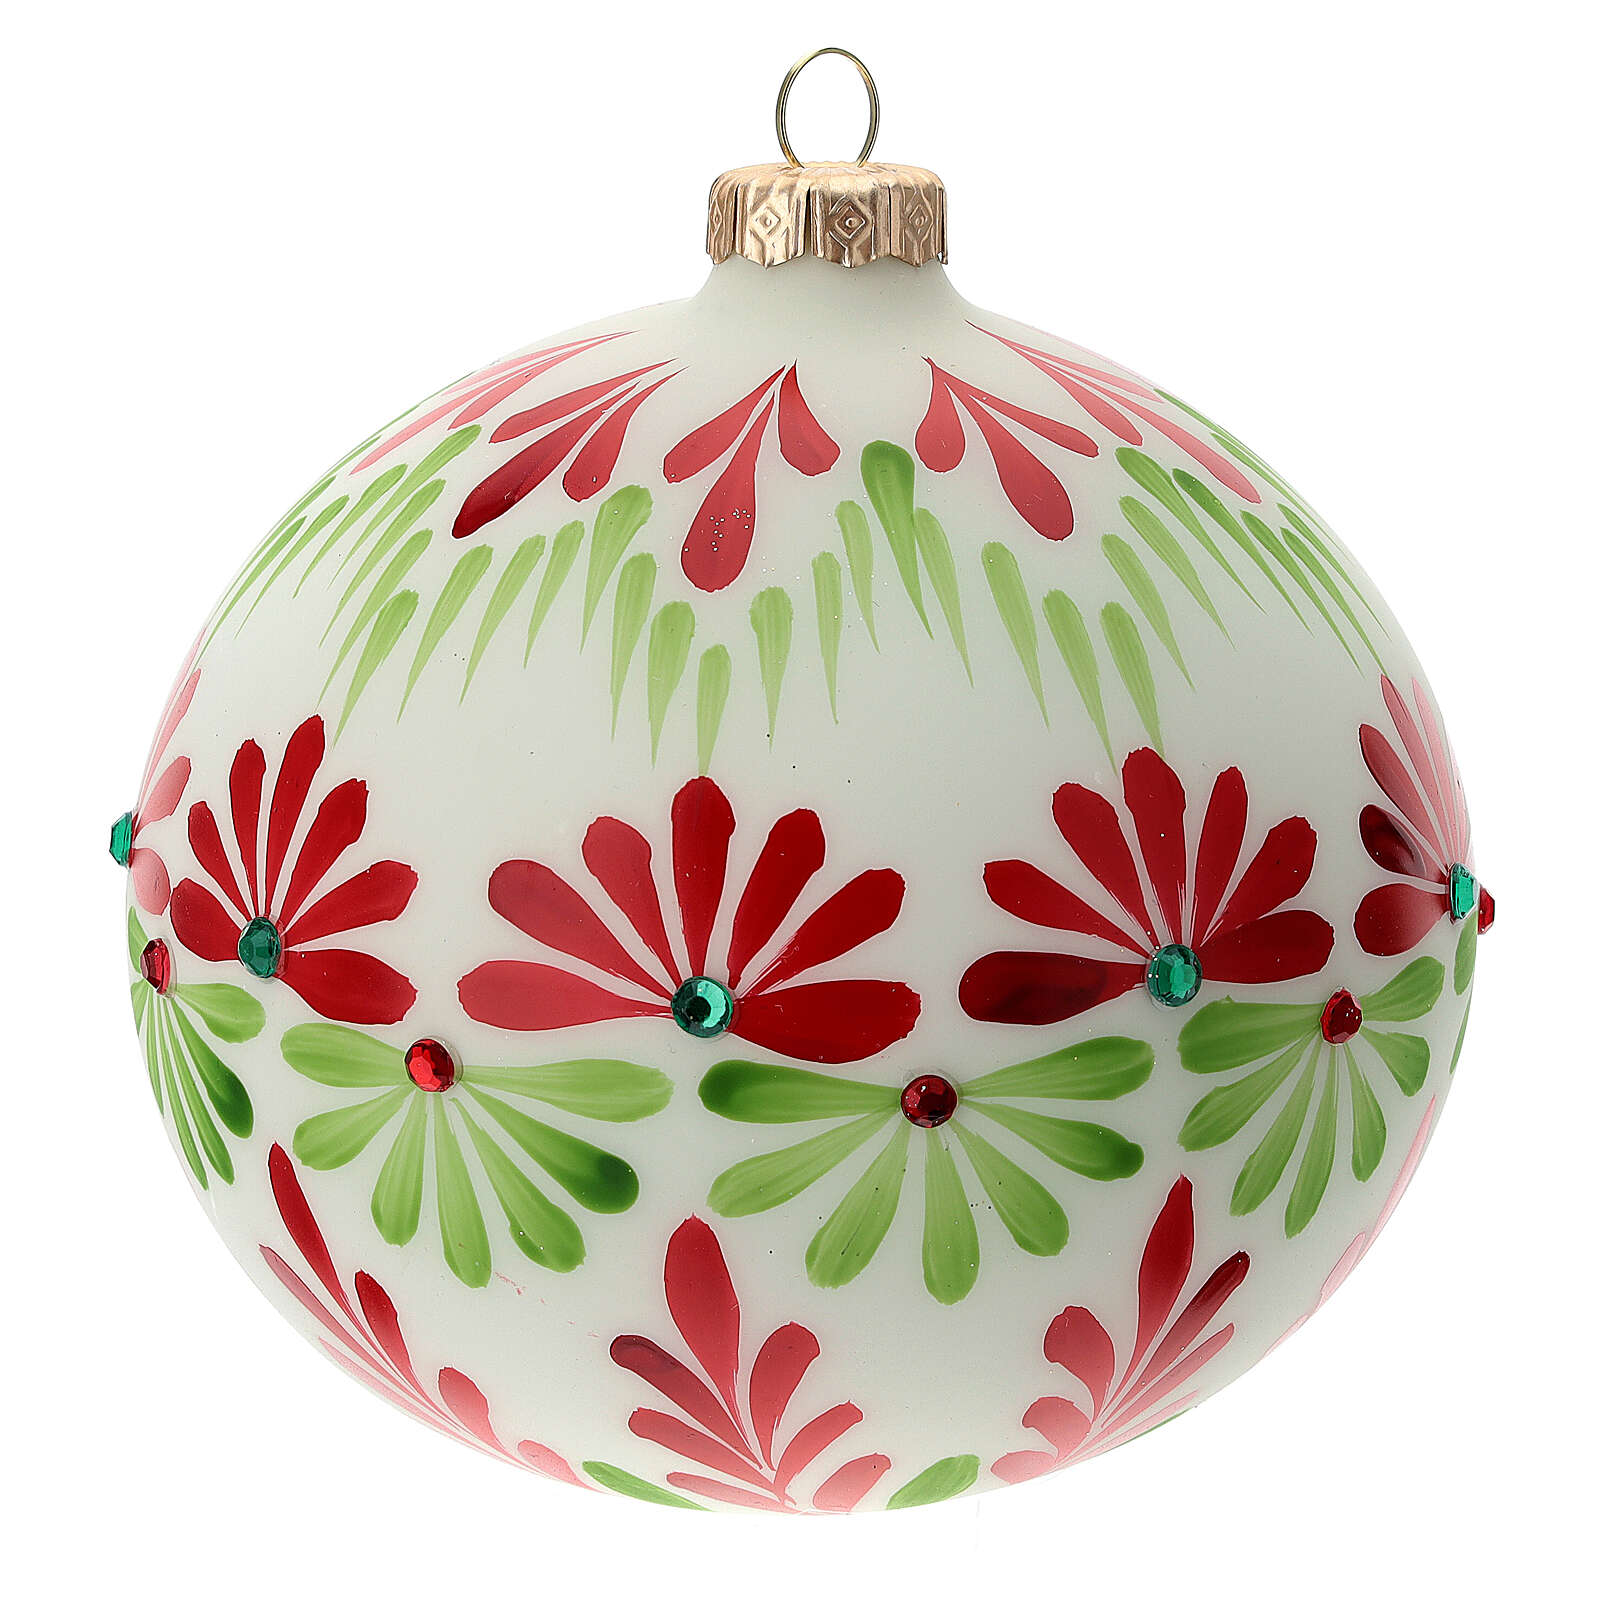 Glass Christmas tree ball ornament stones colored flowers 120 mm 4